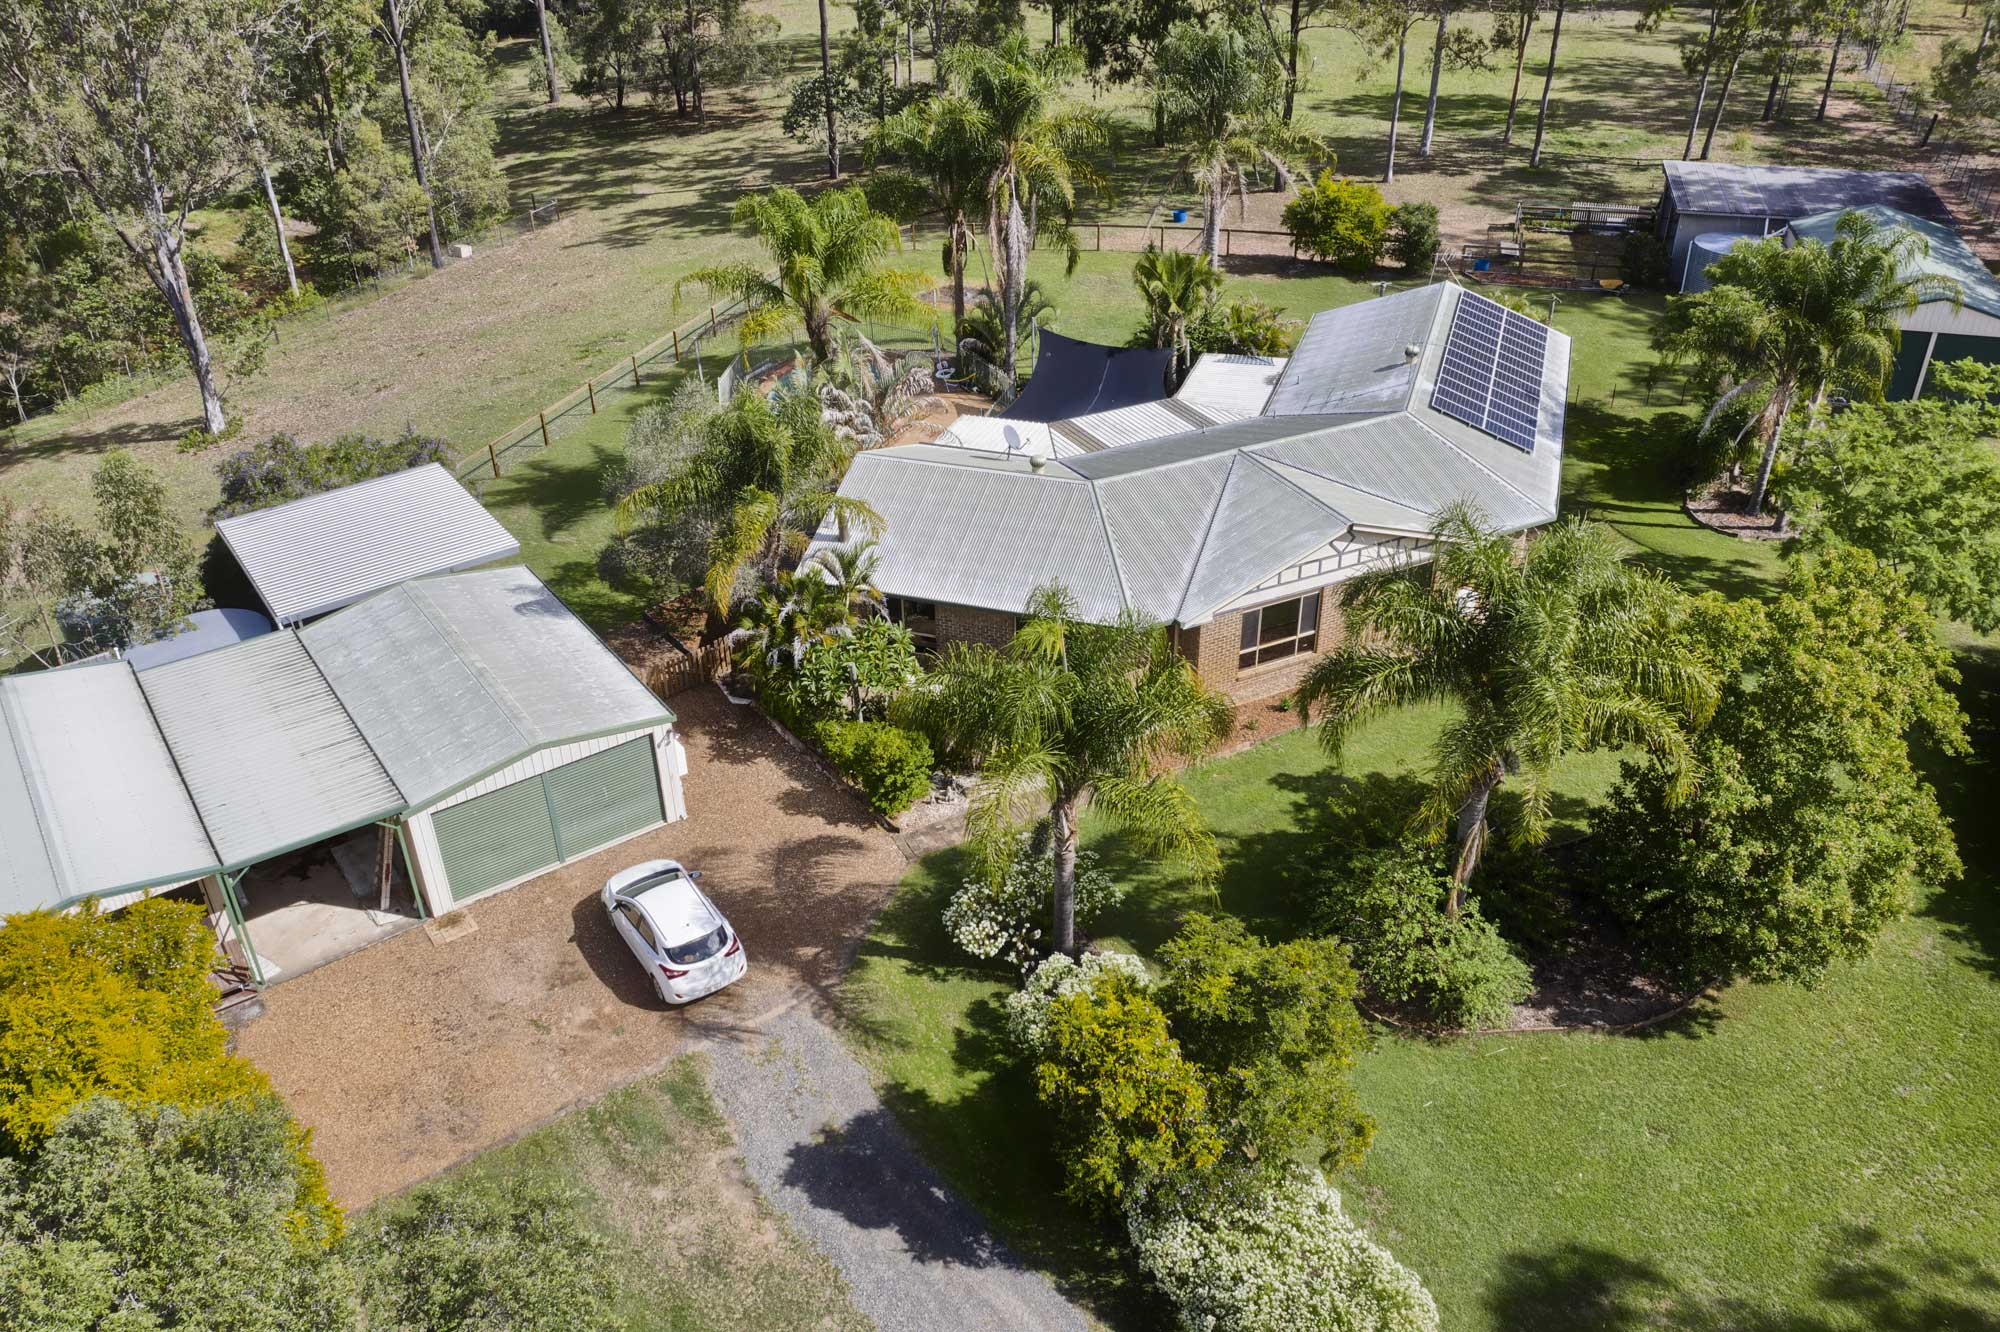 Drone photography at 1033 Teviot Rd Jimboomba for a new real estate listing